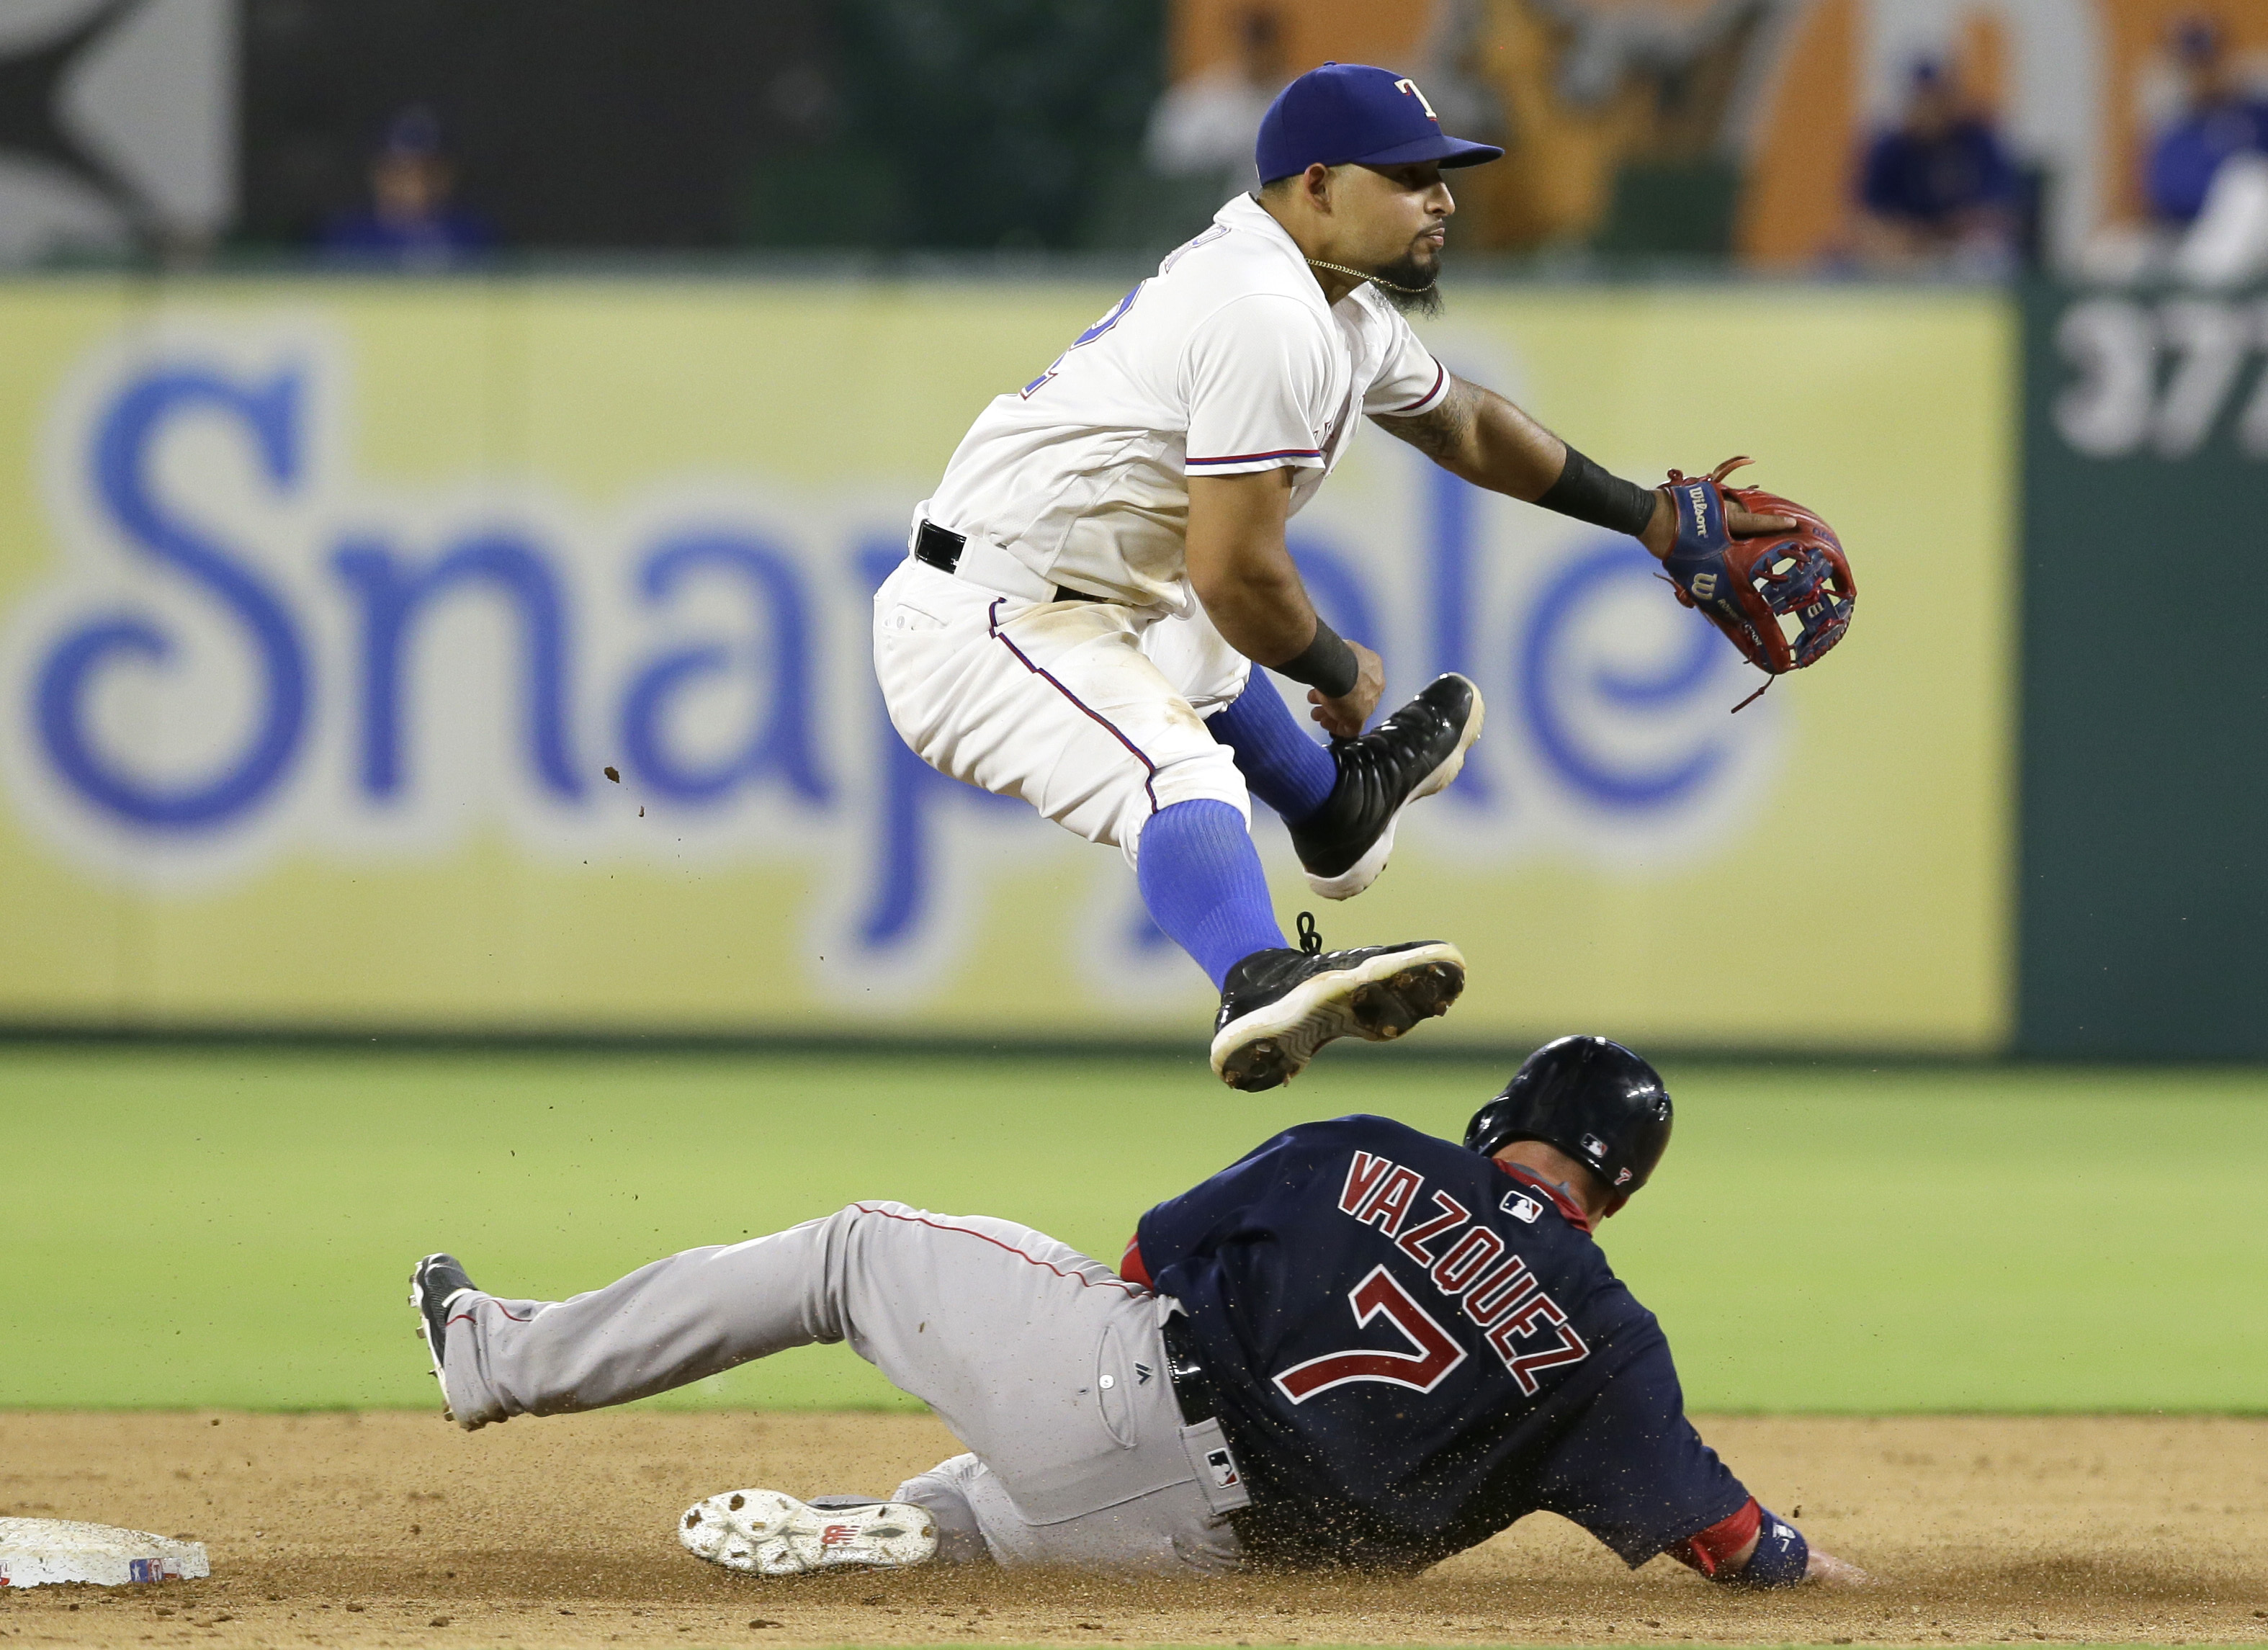 Texas Rangers second baseman Rougned Odor jumps as Boston Red Sox Christian Vazquez (7) slides into second base after being forced out on the first half of a double play during the fifth inning of a baseball game in Arlington, Texas, Friday, June 24, 2016